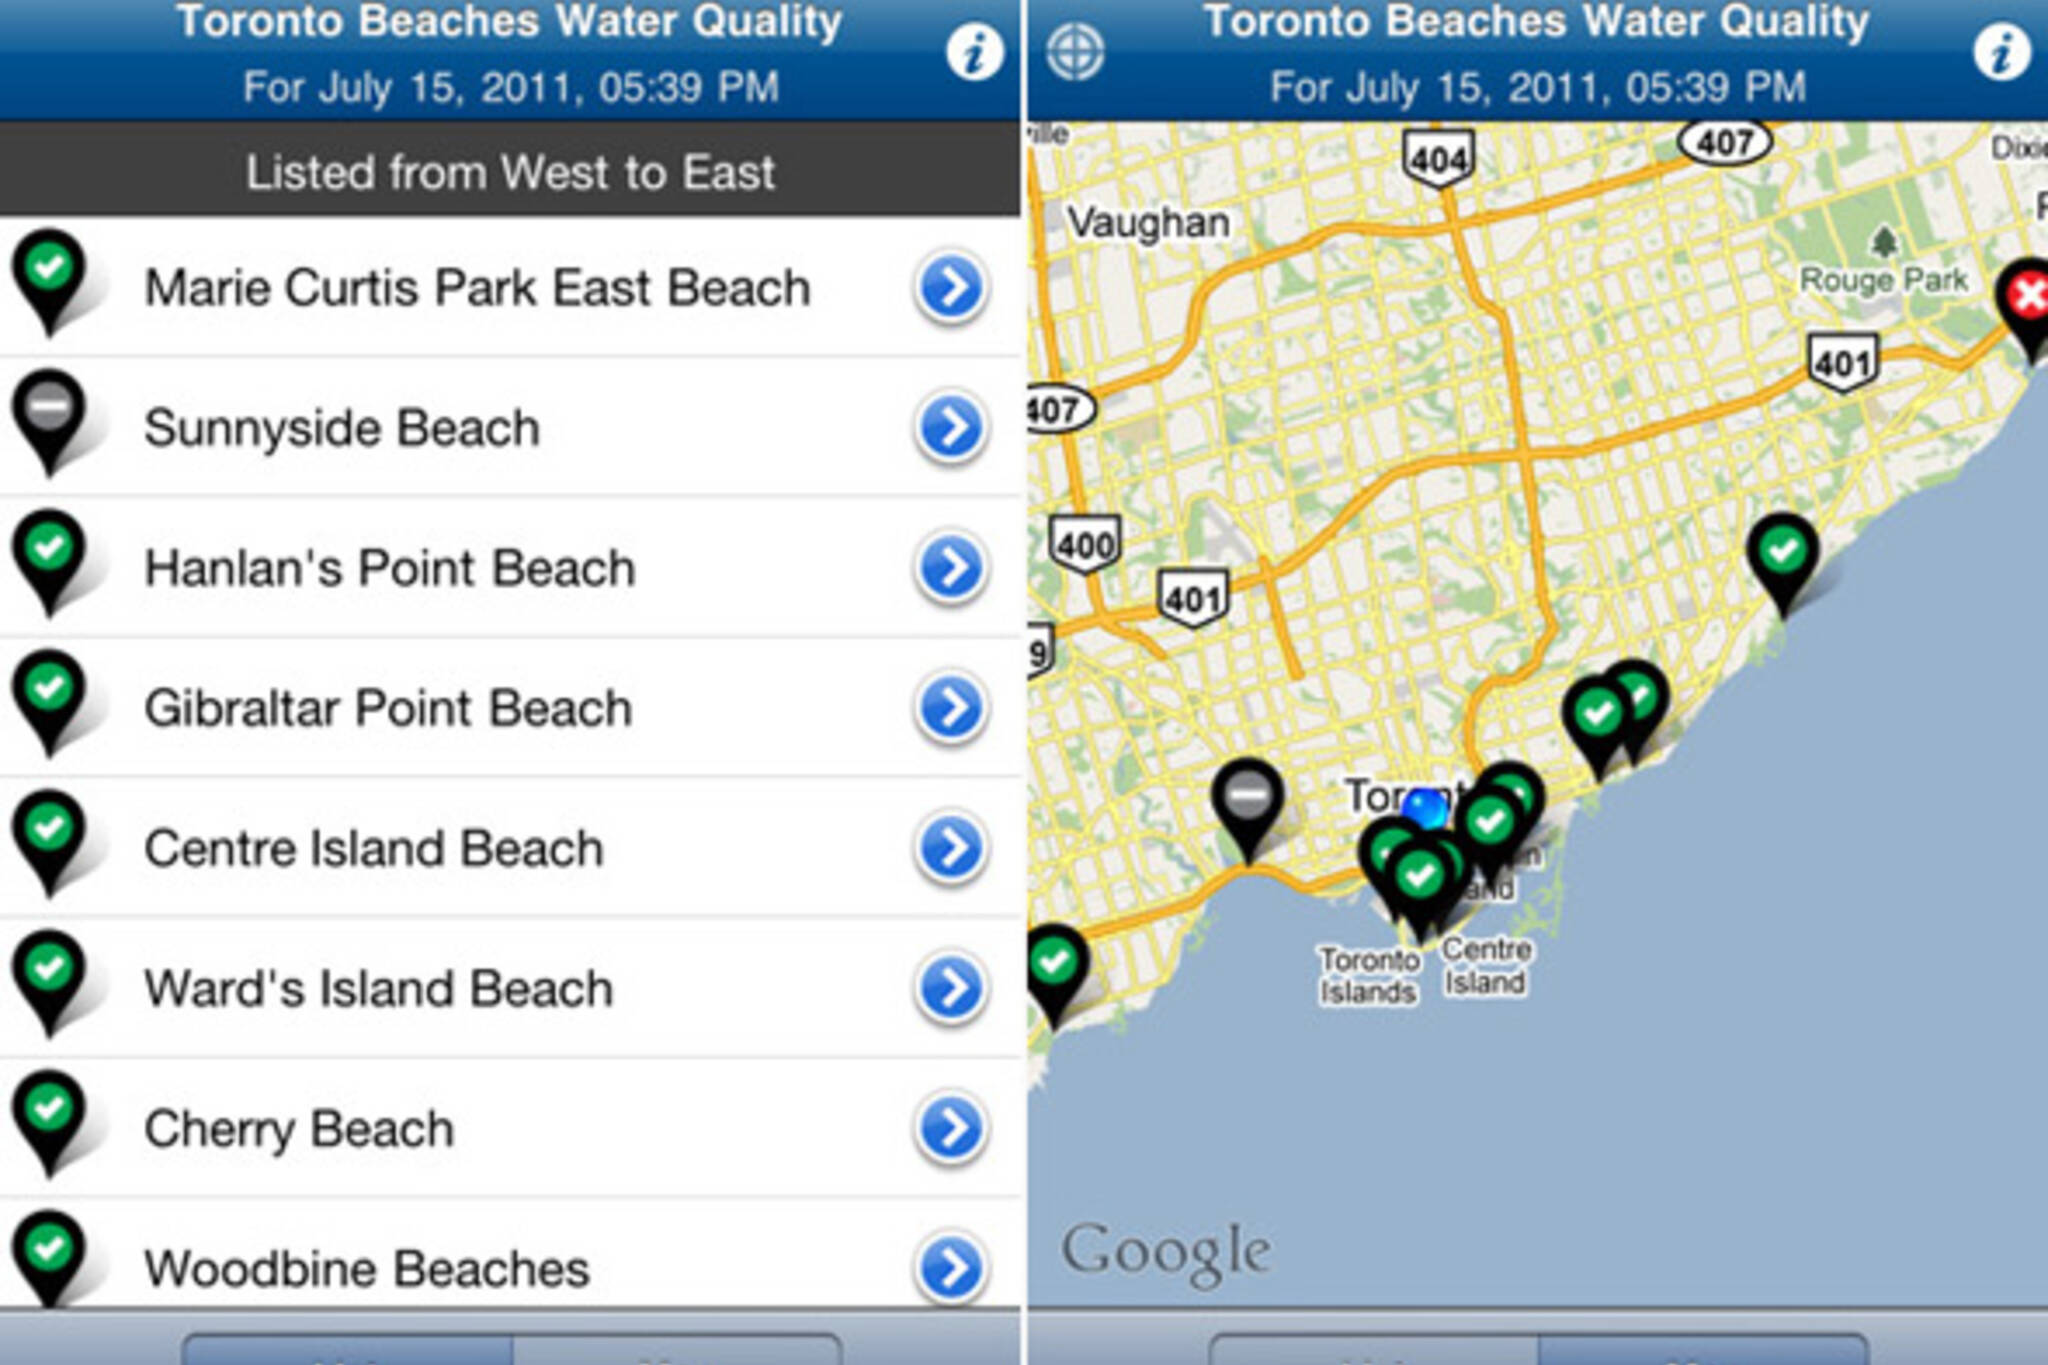 City of Toronto releases beaches water quality app